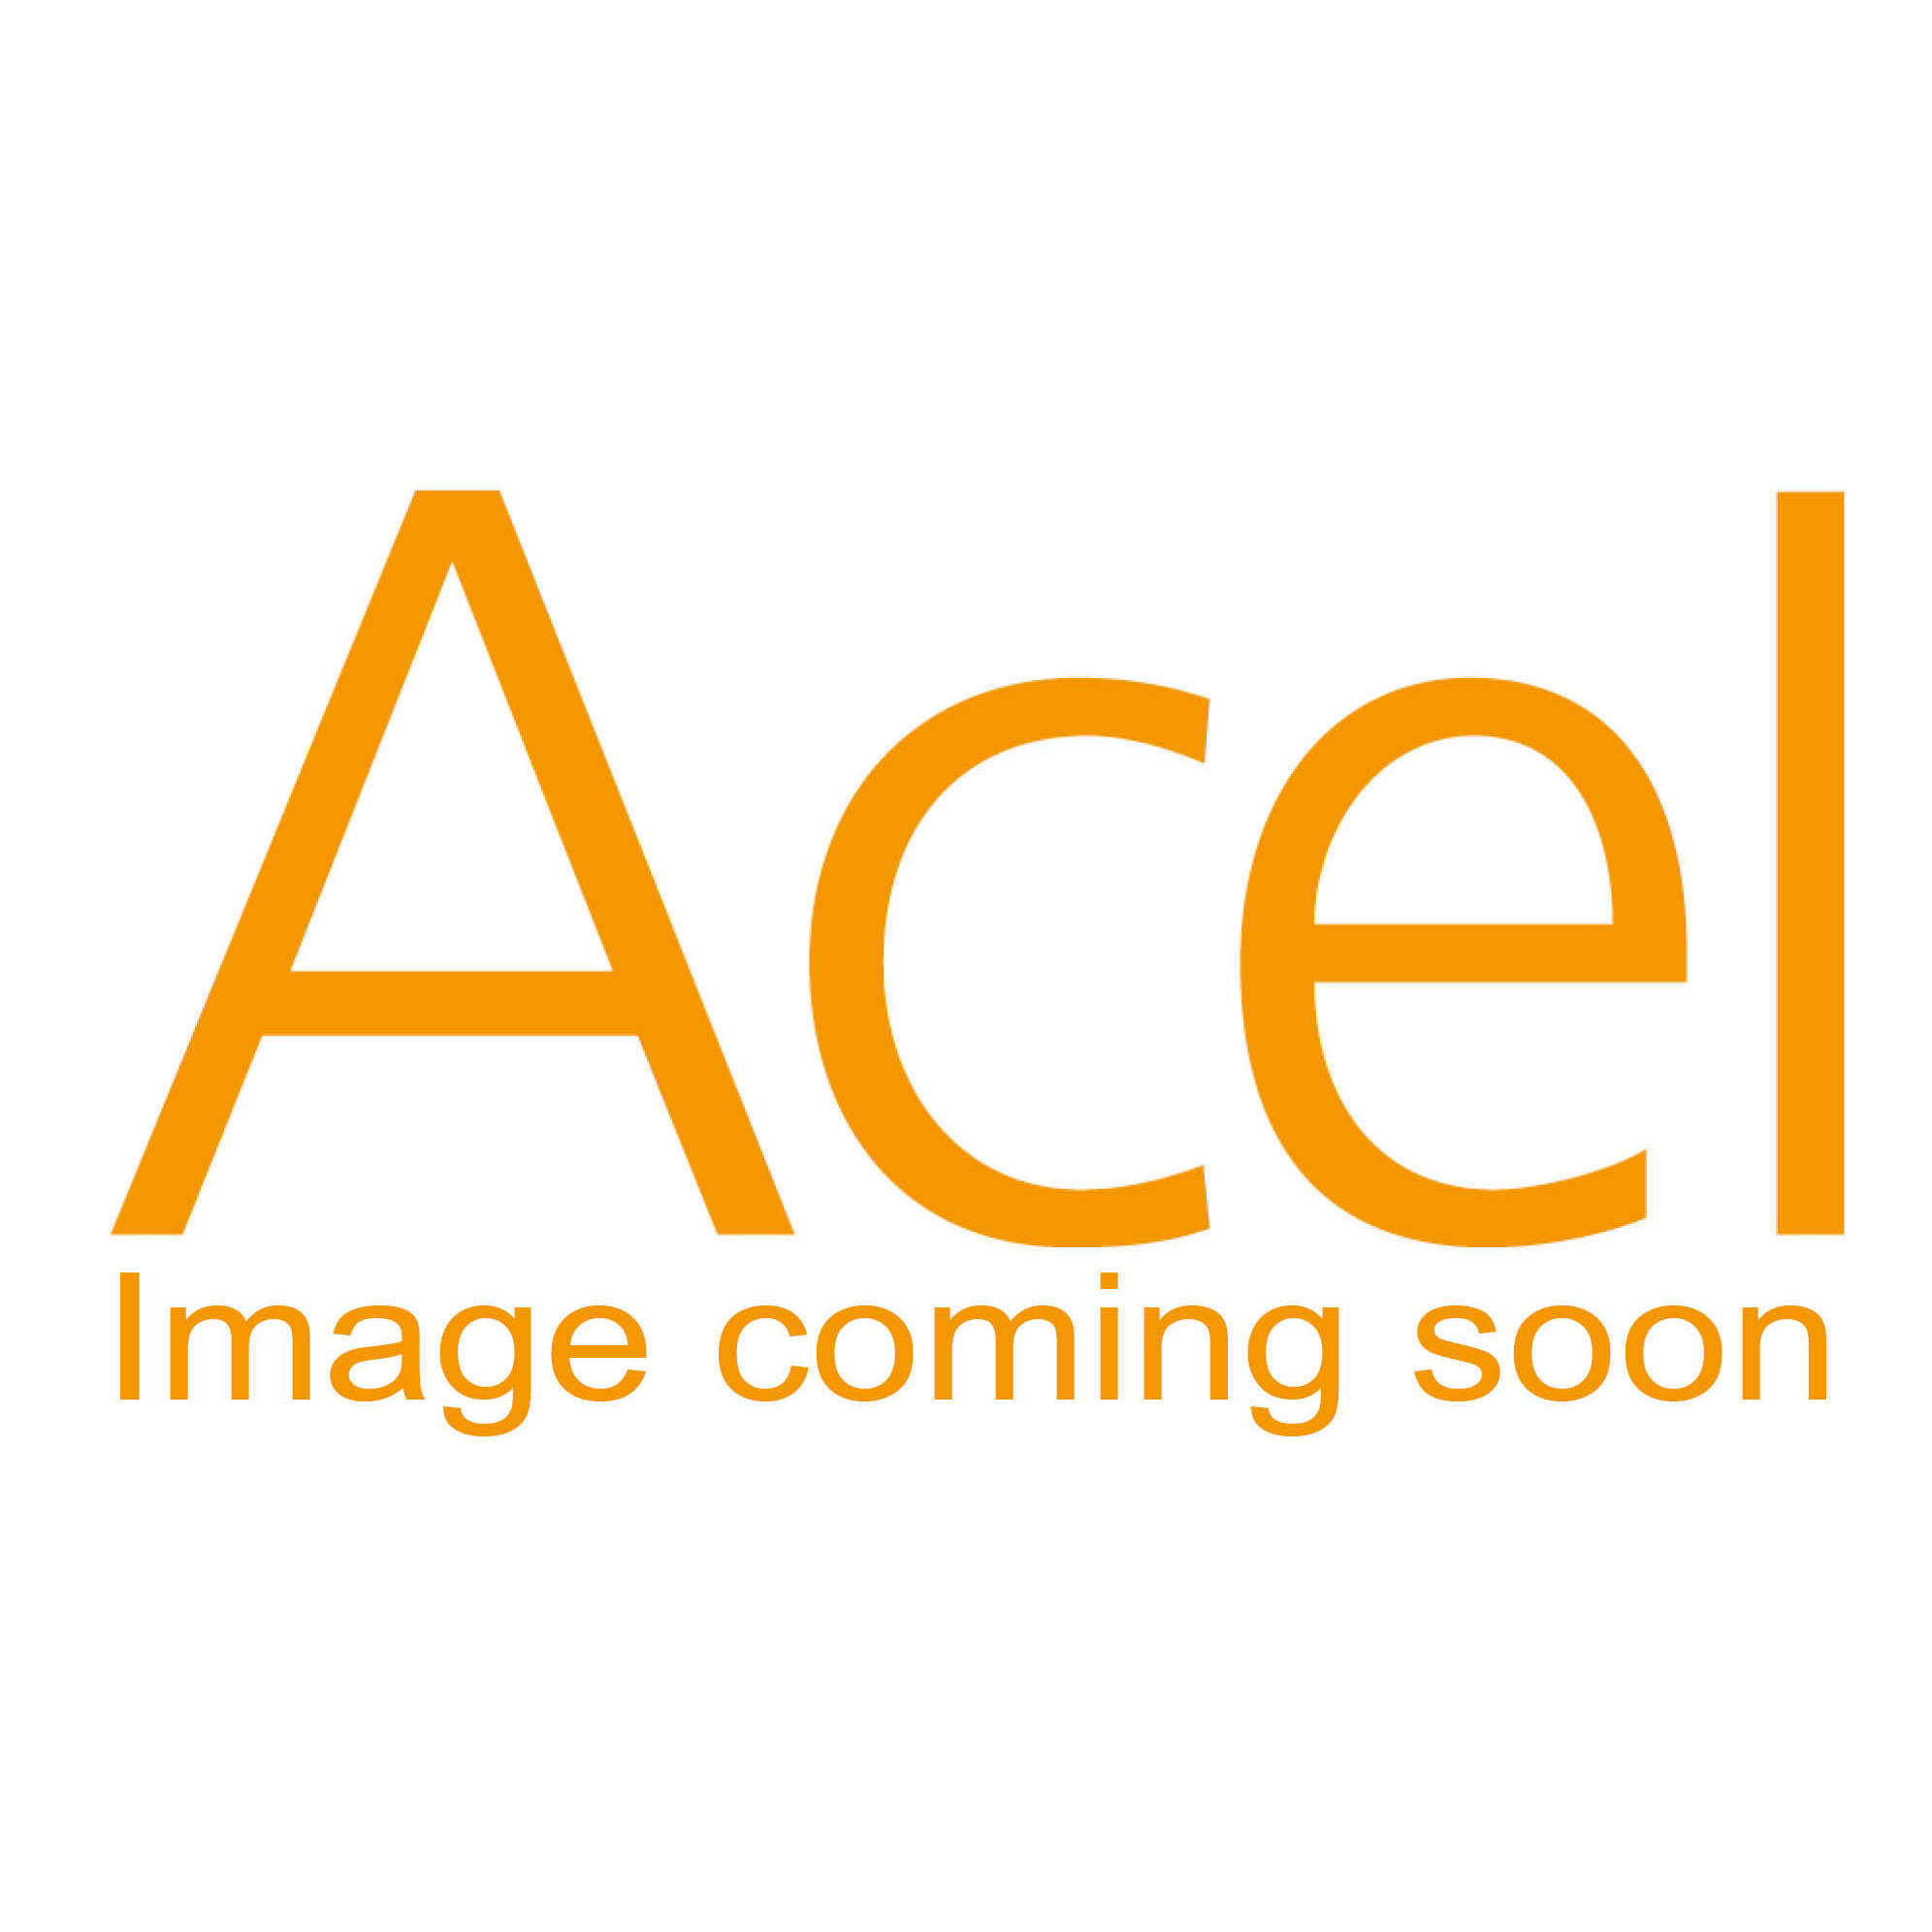 Self Adhesive Vinyl labels - Double sided no smoking vehicle stickers - 70 dia & 75 x 135mm - 2 of each